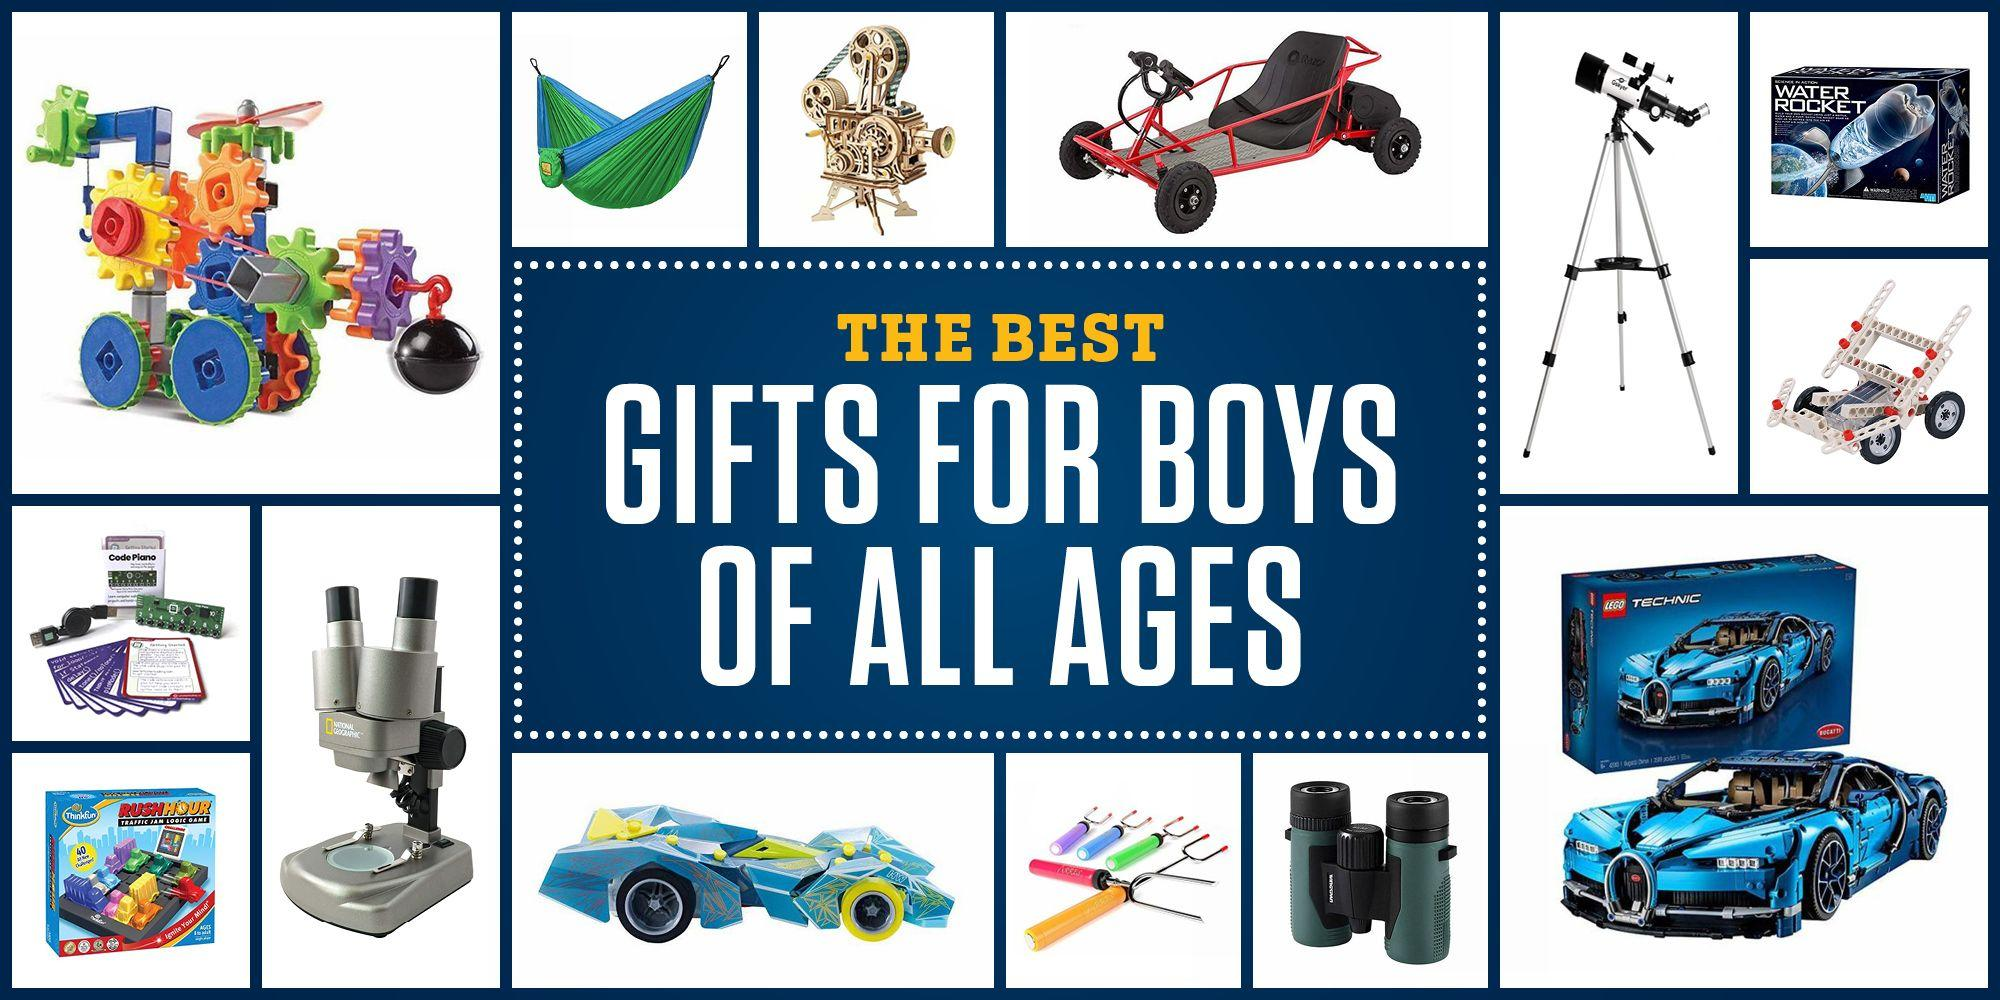 <p>Fledgling geniuses deserve gifts that match their geeky interests. With everything from puzzles and robots to model trains and DIY experiments, the educational toy market is bound to have something for the science-minded boys in your life. Here are 20 of our favorite toys and kits.</p>